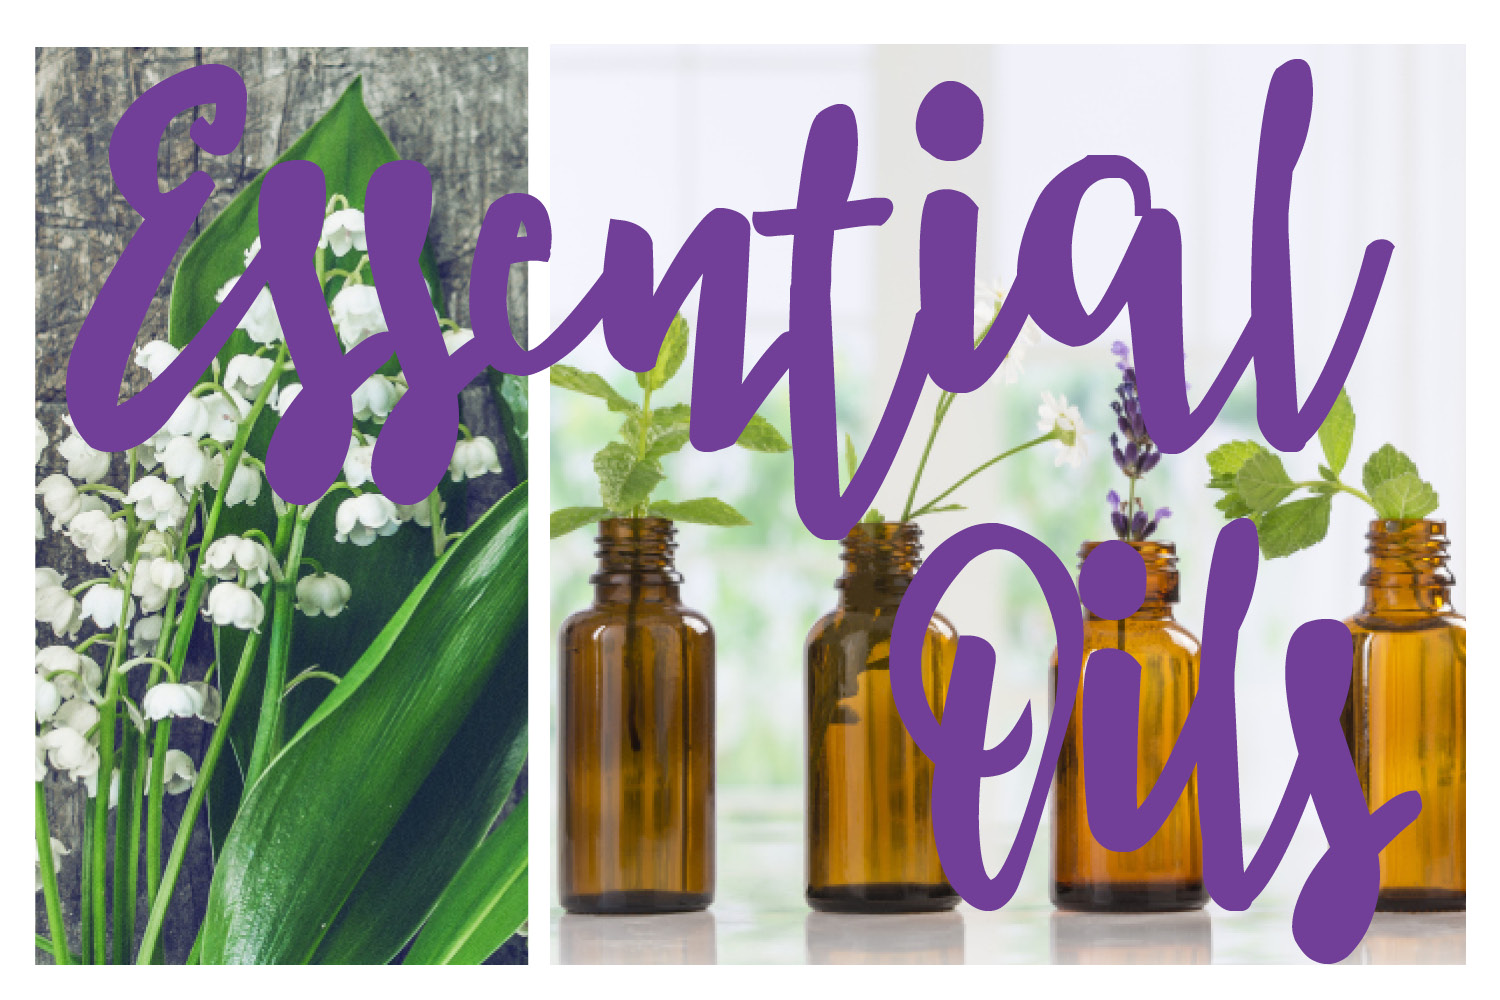 essential oils - why to use essential oils - bonita springs essential oils - naples florida essential oils - natural health solutions. natural health remedies.jpg